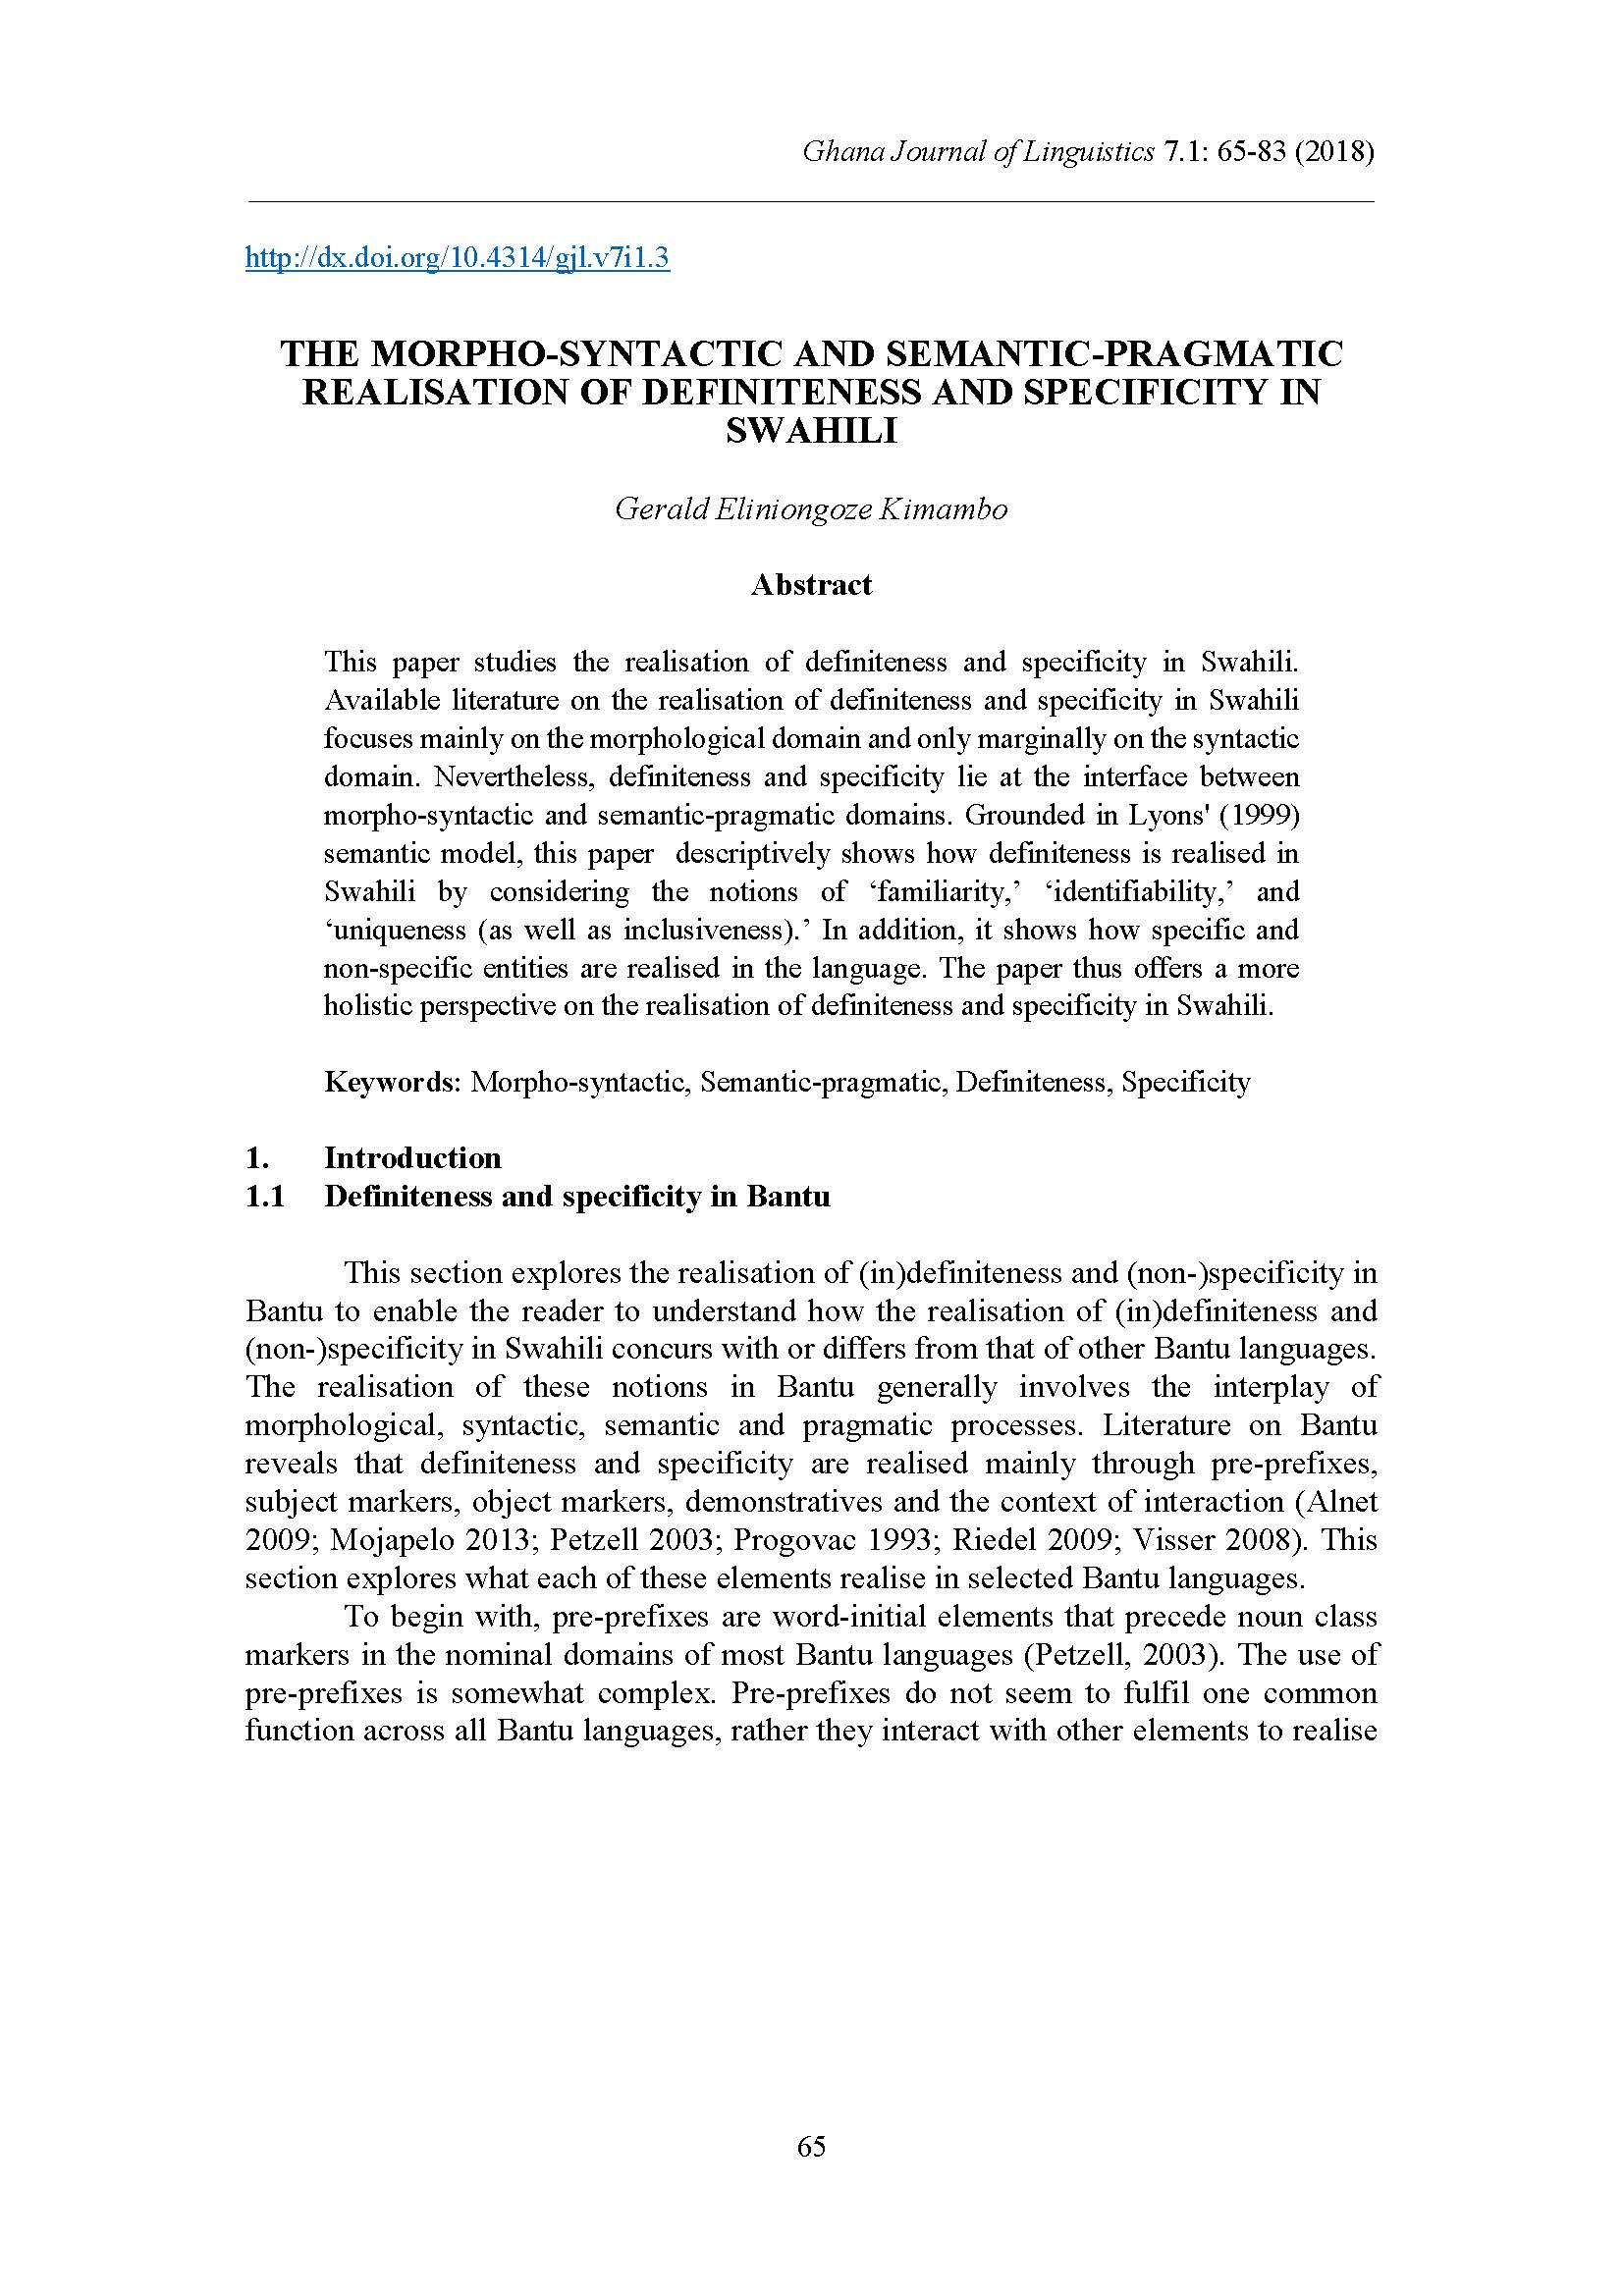 Morpho-syntactic and Semantic-Pragmatic Realisation of Definiteness and Specificity in Swahili